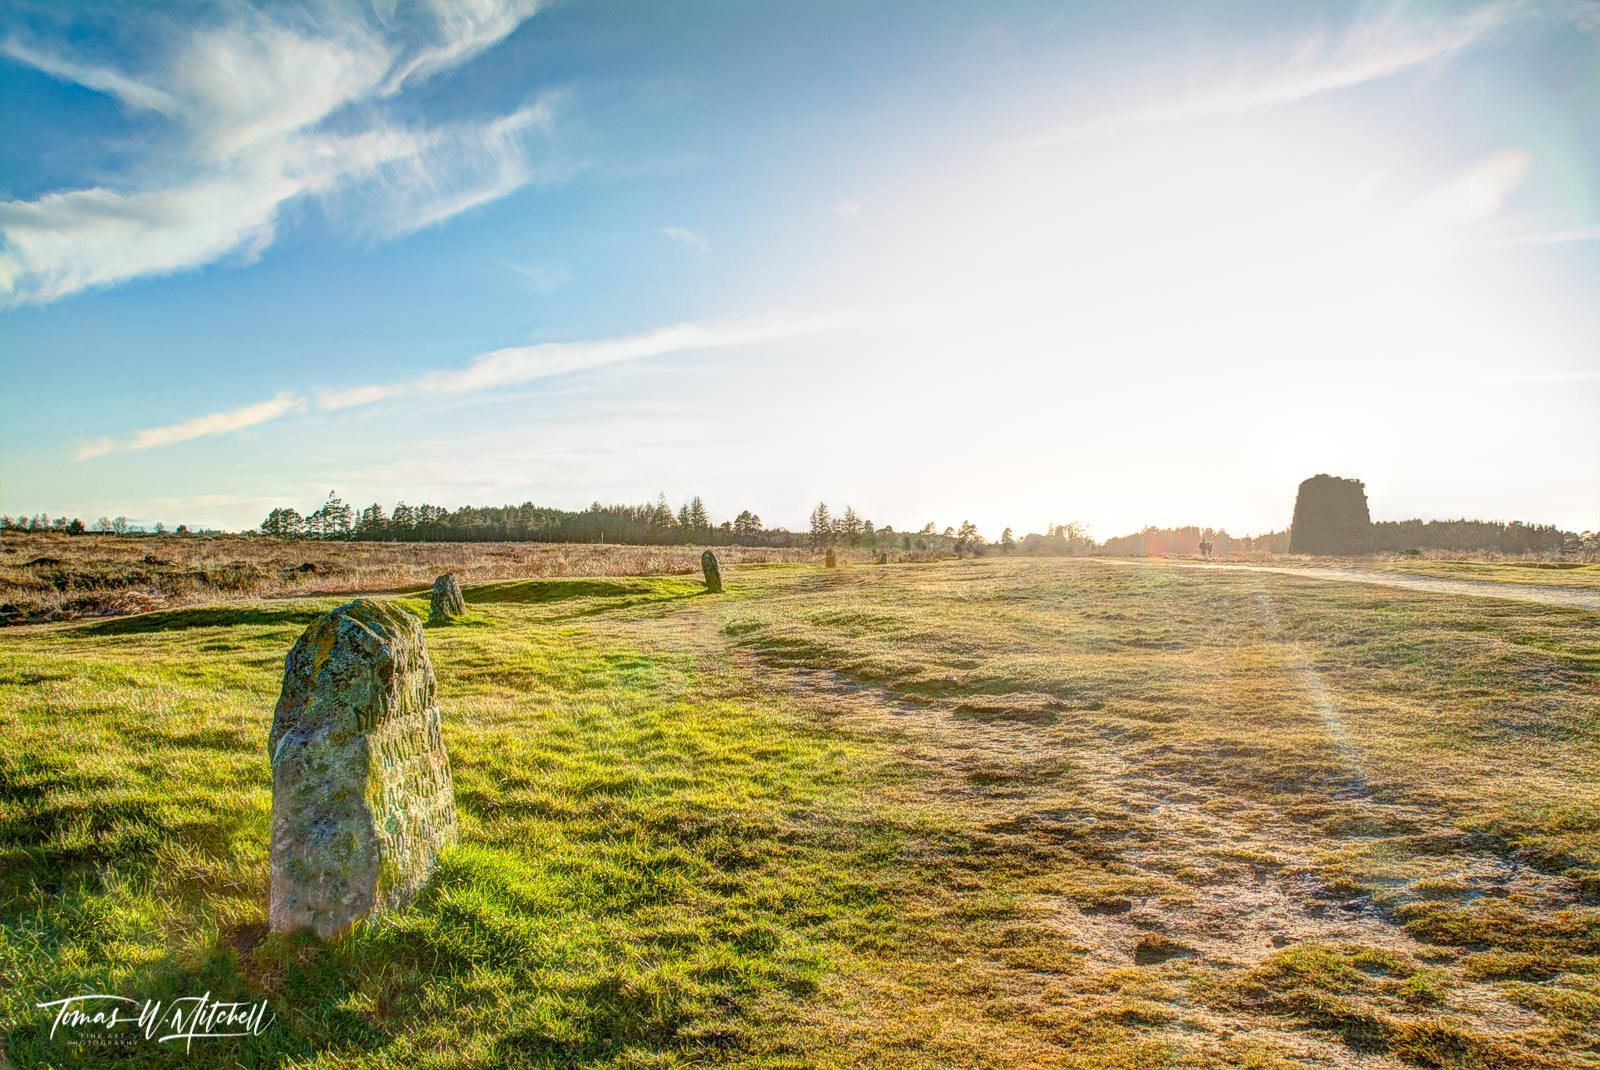 limited edition, fine art, prints, scotland, culloden moor, scottish, jacobites, highlands, battlefield, photographing, cairn, headstones, duncan forbes, scots, photo